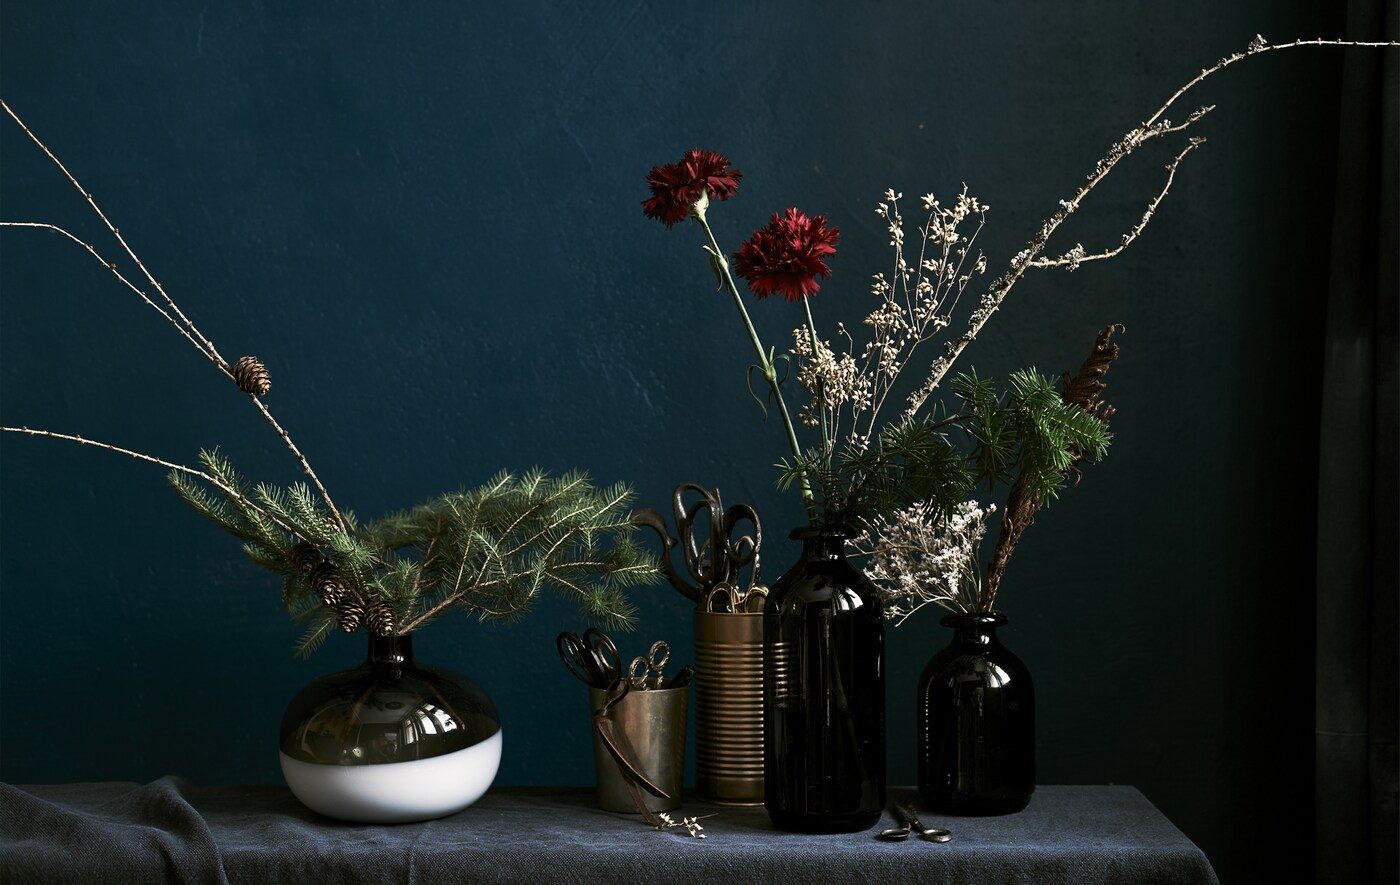 Winter floral displays made up of green sprigs, dry branches and fresh flowers arranged in dark vases set against a dark cloth background.